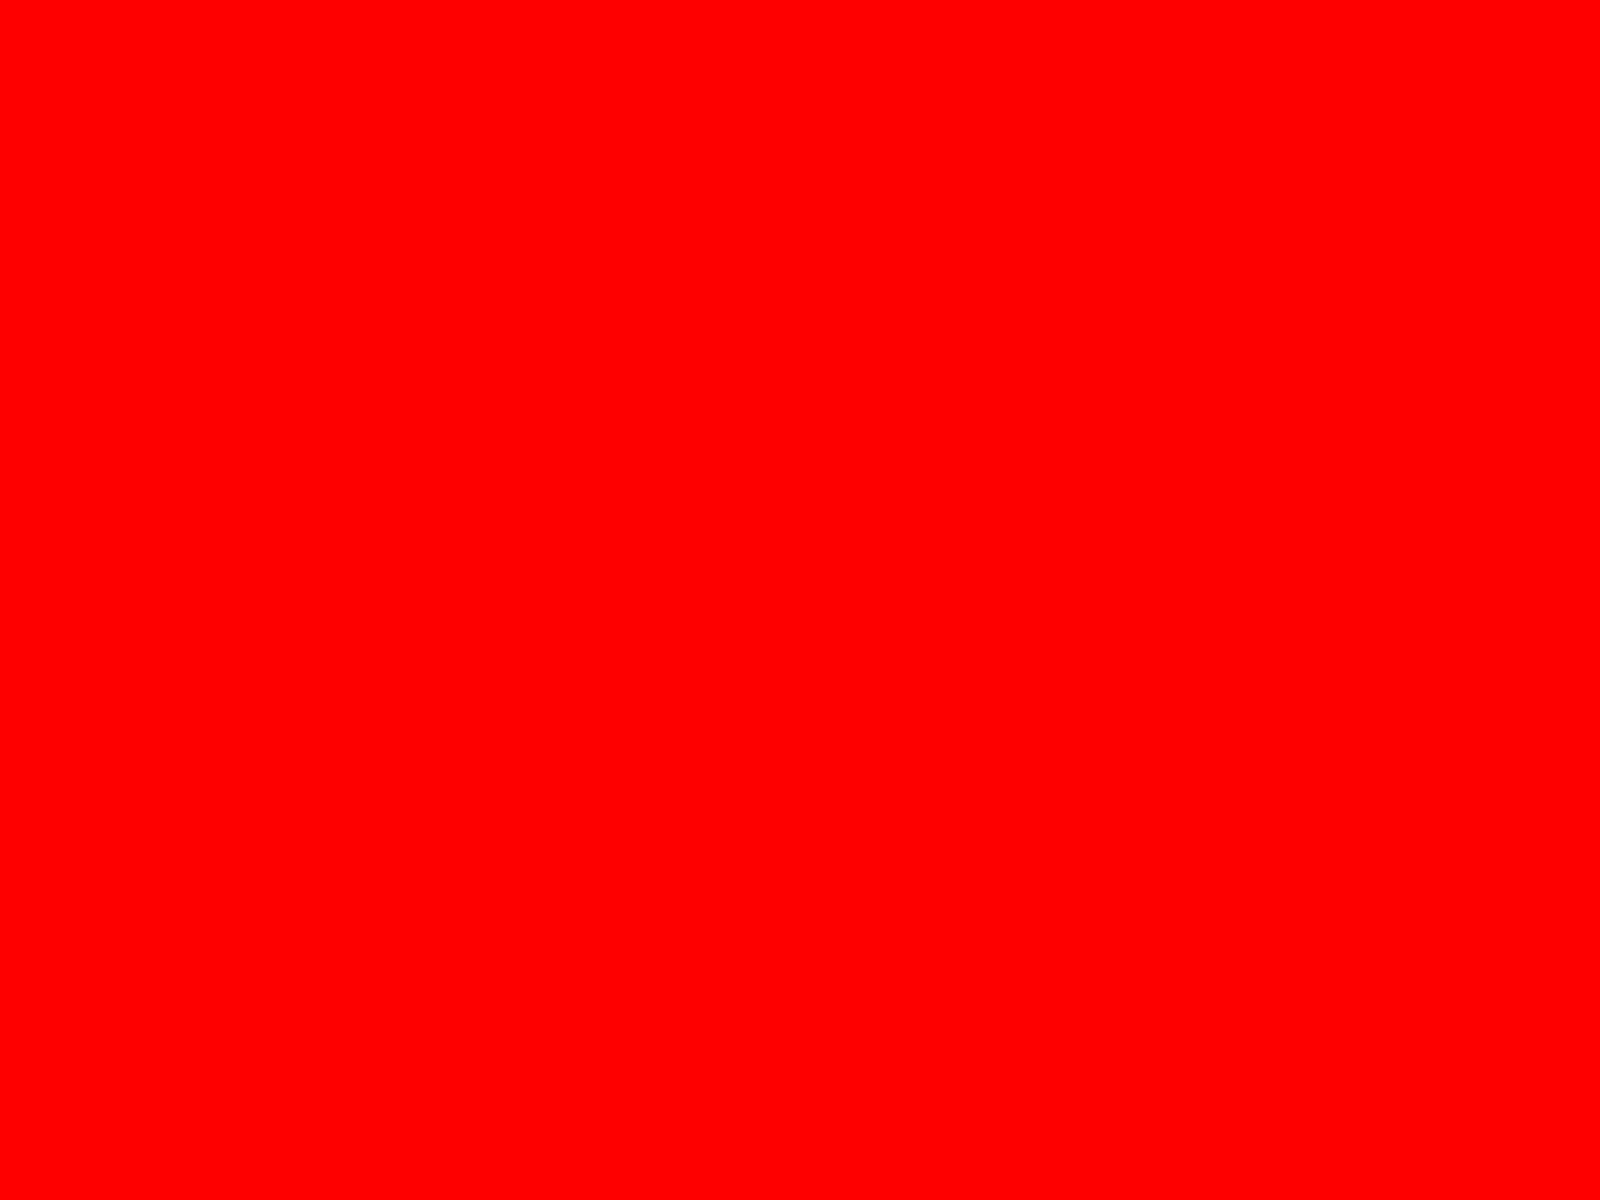 1600x1200 Red Solid Color Background